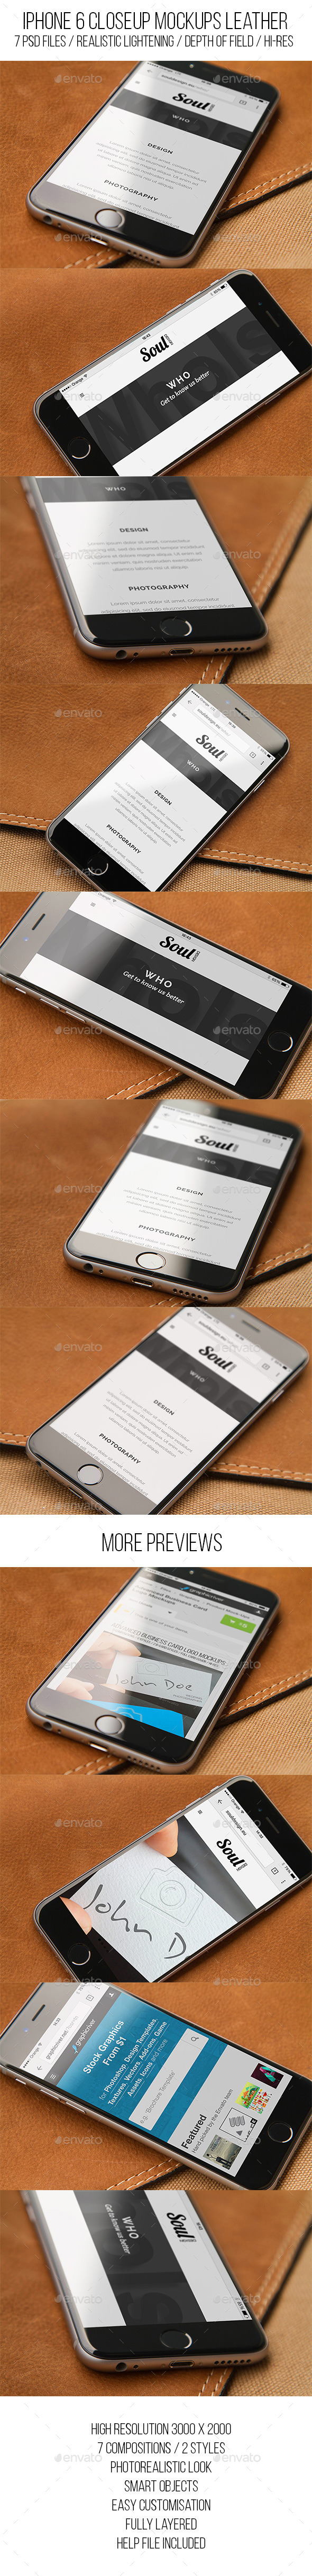 GraphicRiver iPhone 6 Closeup Mockups Leather 11871104